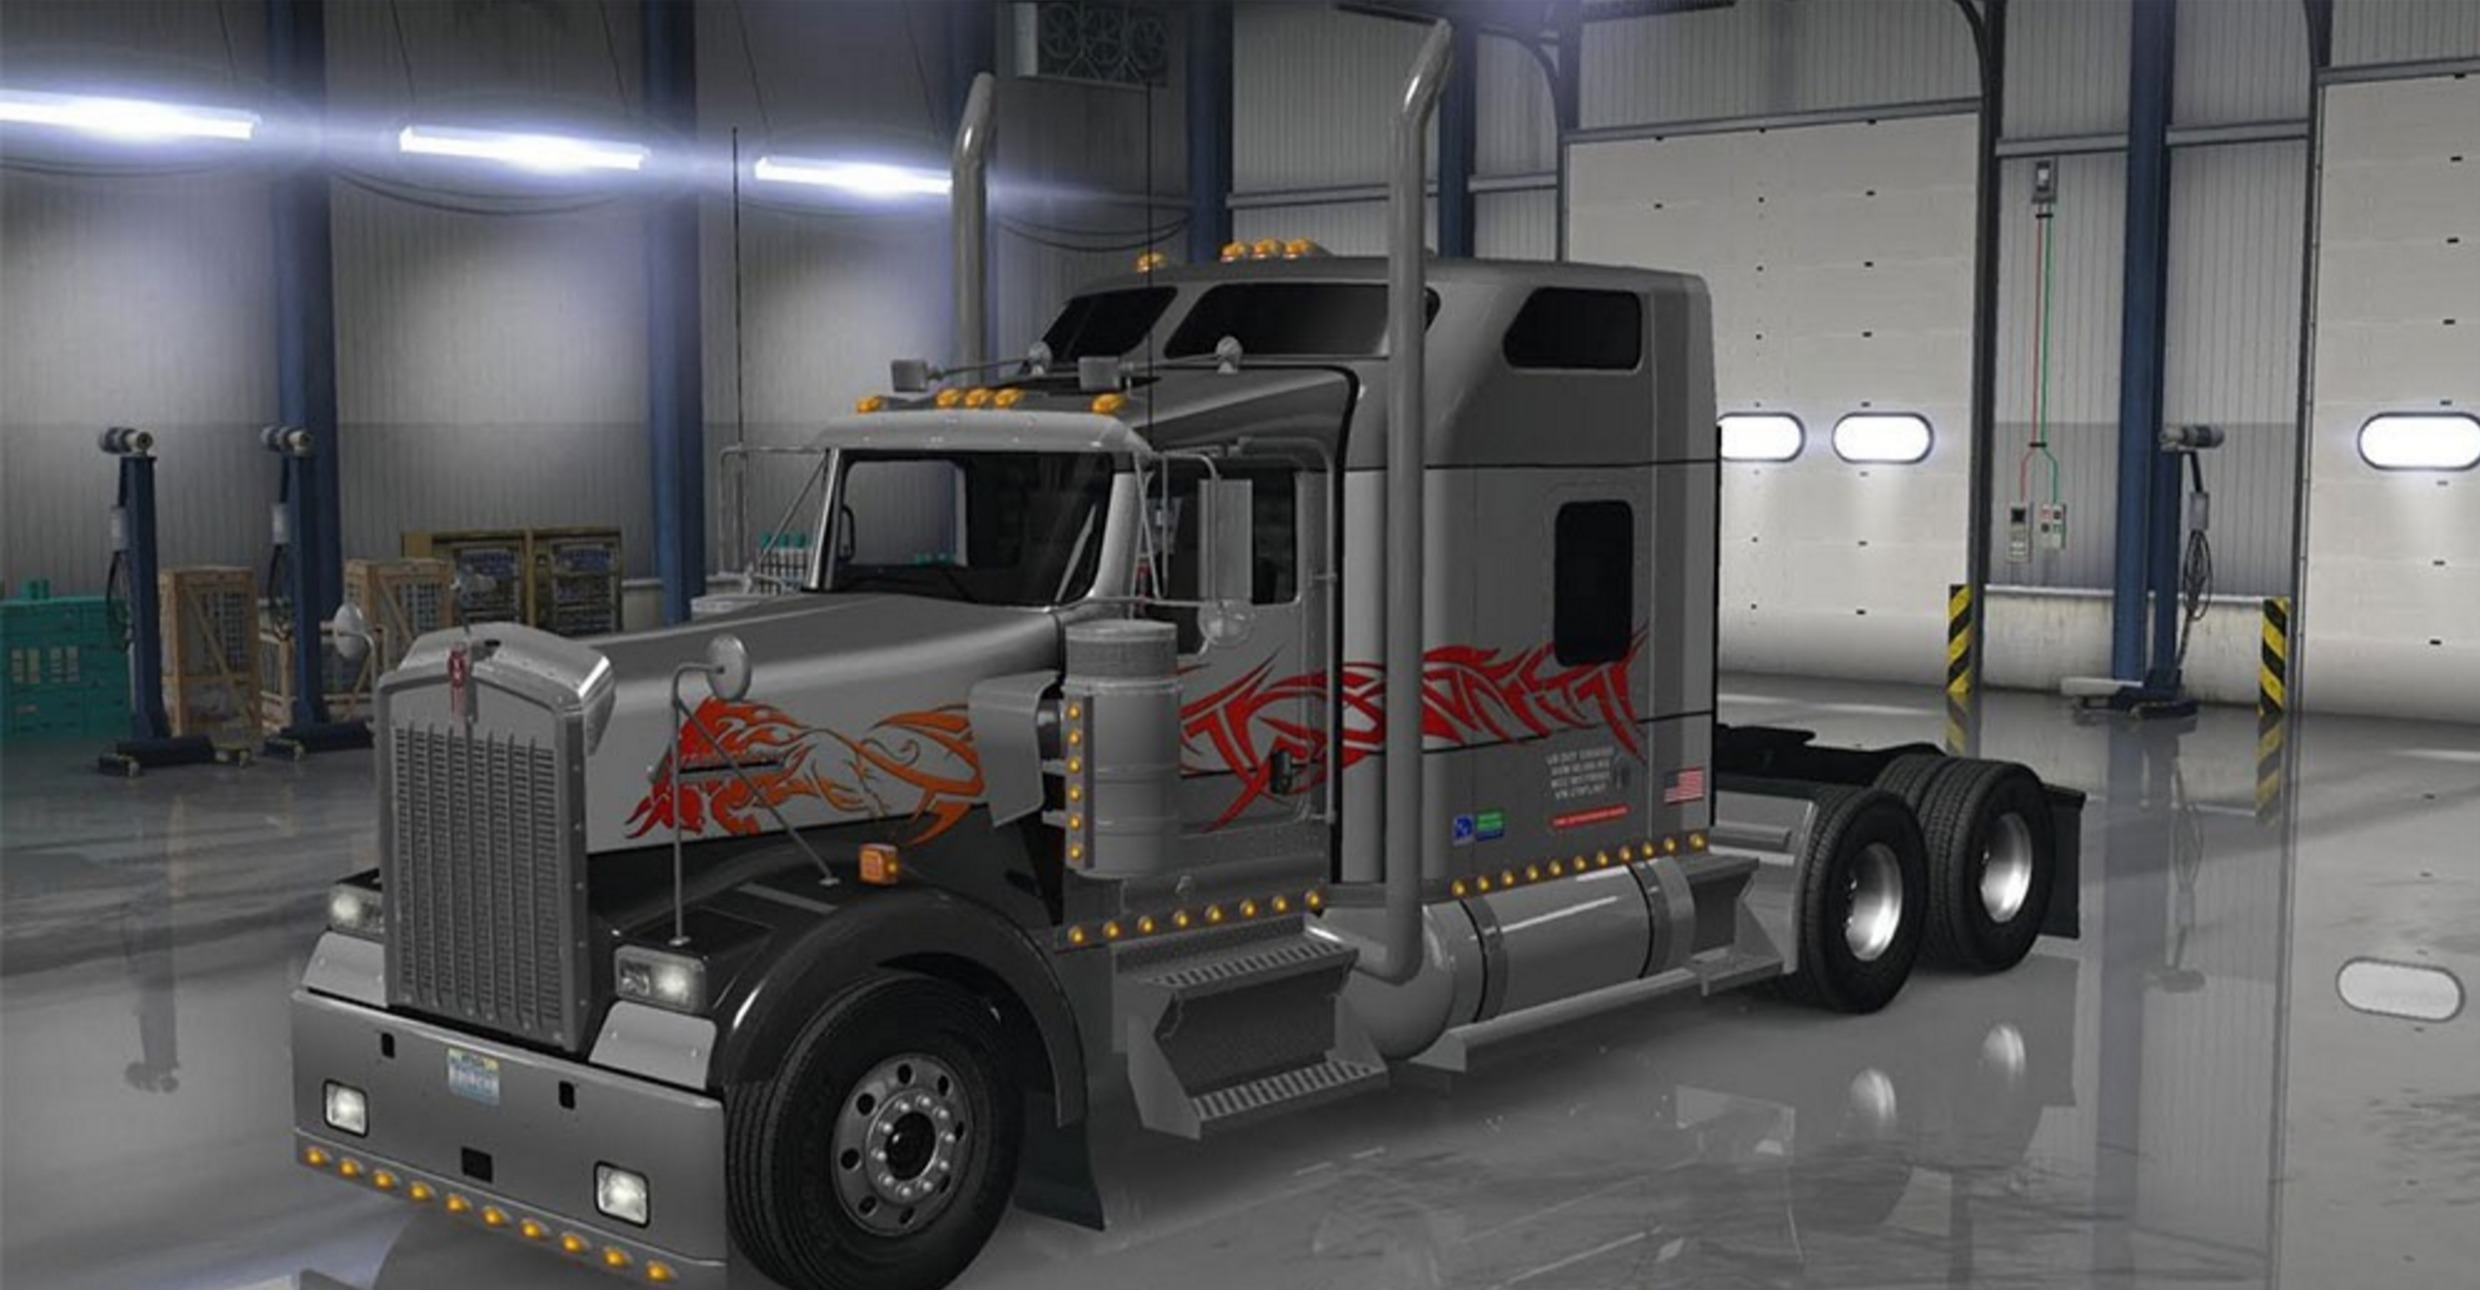 Kenworth T Interior moreover  together with Kenworth T Sleeper Cab Left View as well Maxresdefault moreover Maxresdefault. on kenworth w900 studio sleeper